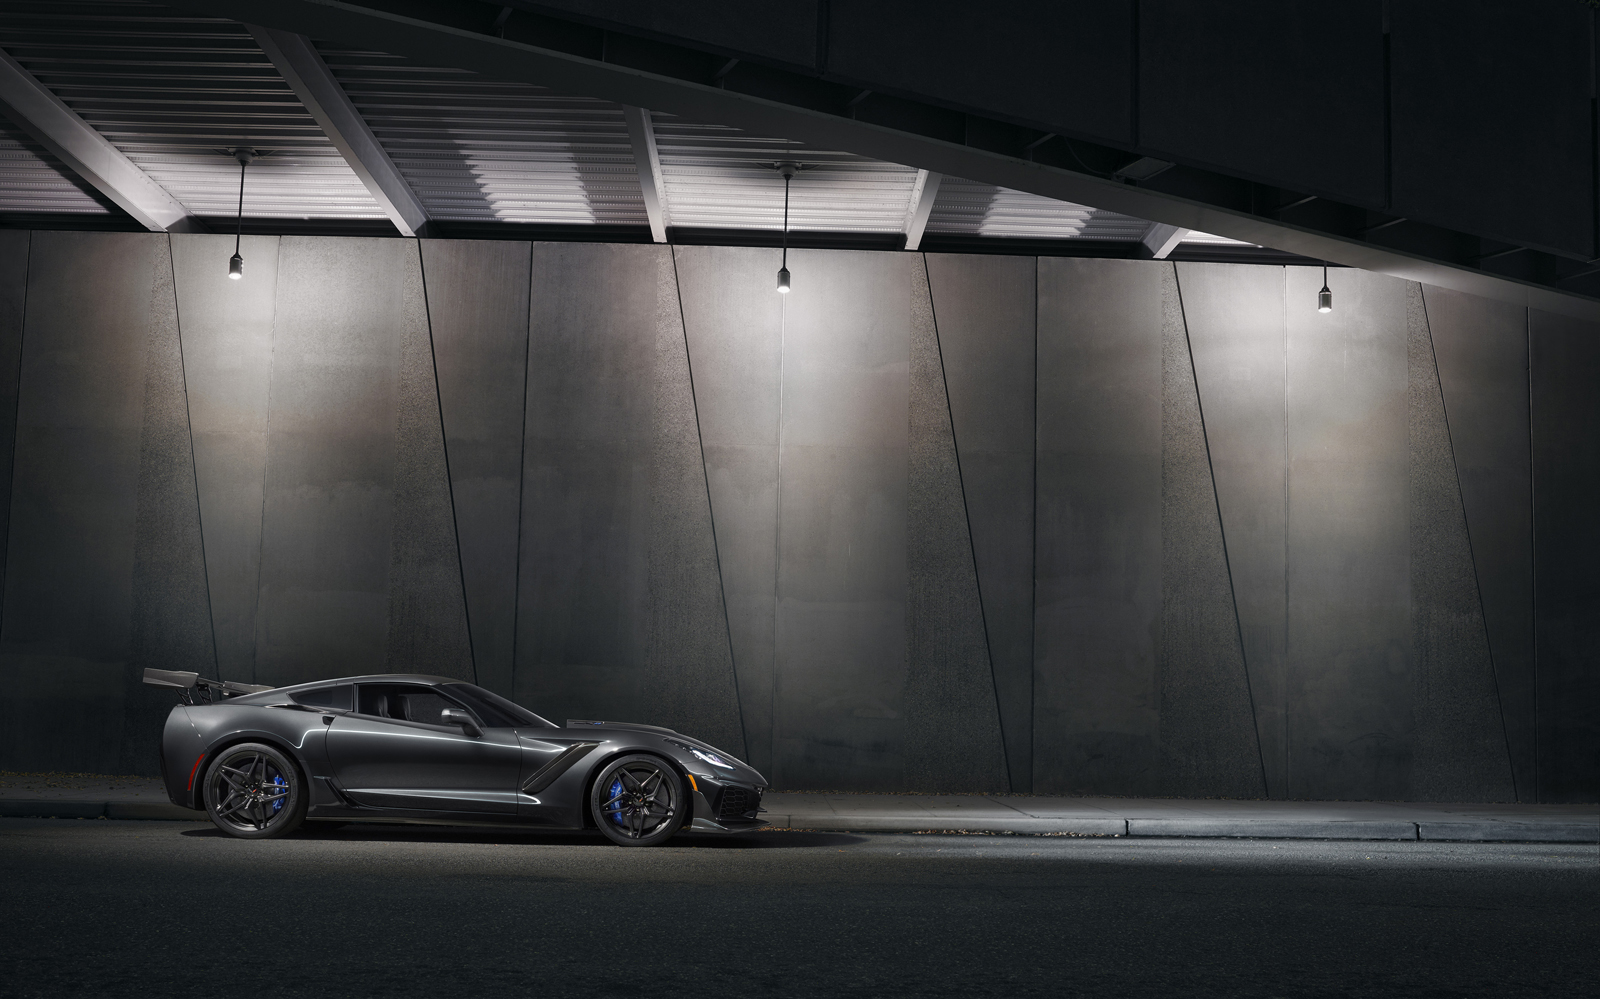 2019 Chevrolet Corvette Zr1 Specs You Need To Know